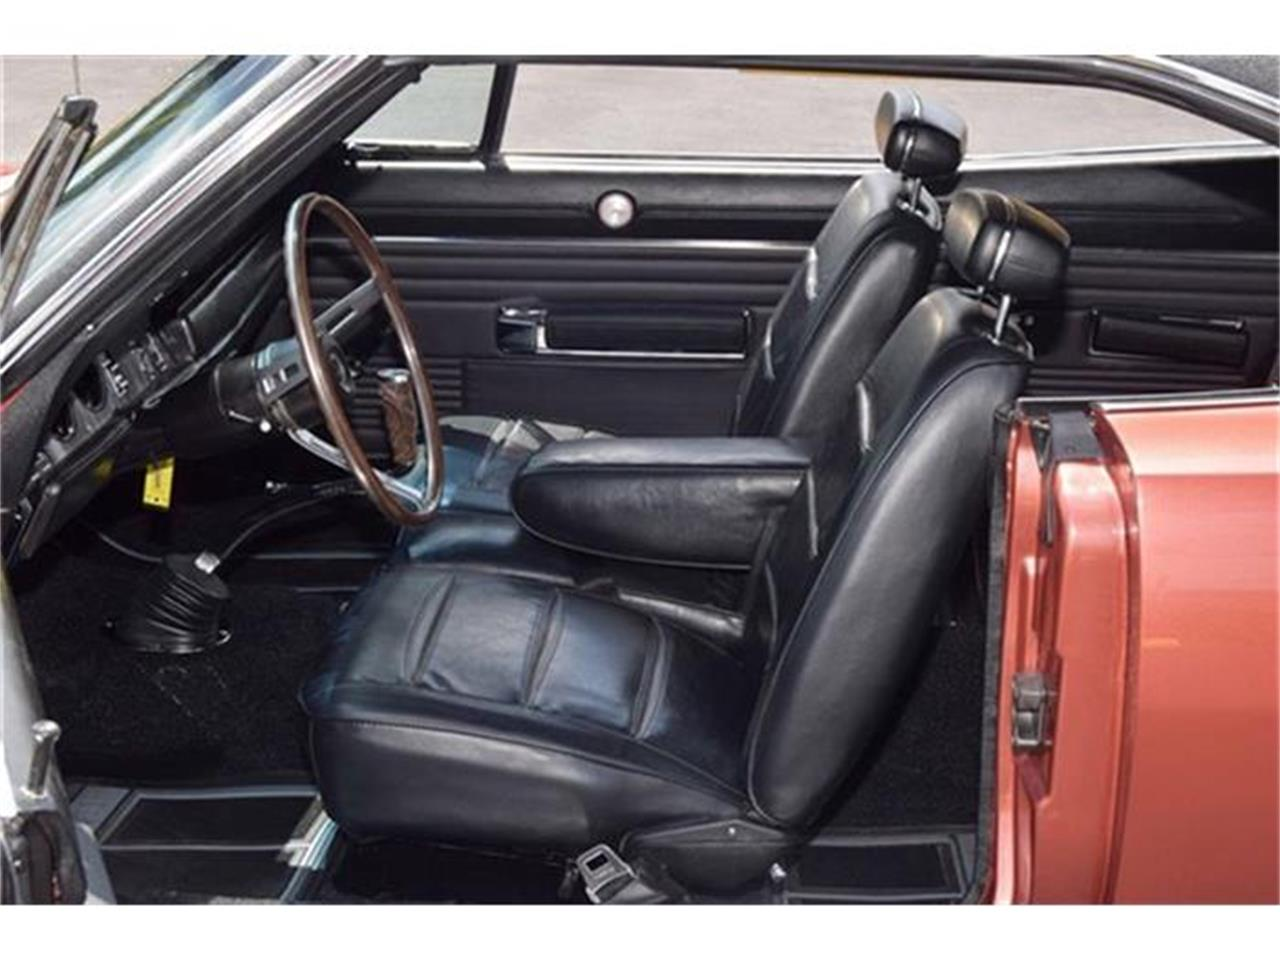 Large Picture of 1968 Dodge Charger R/T located in Miami Florida - $134,900.00 - F3VL